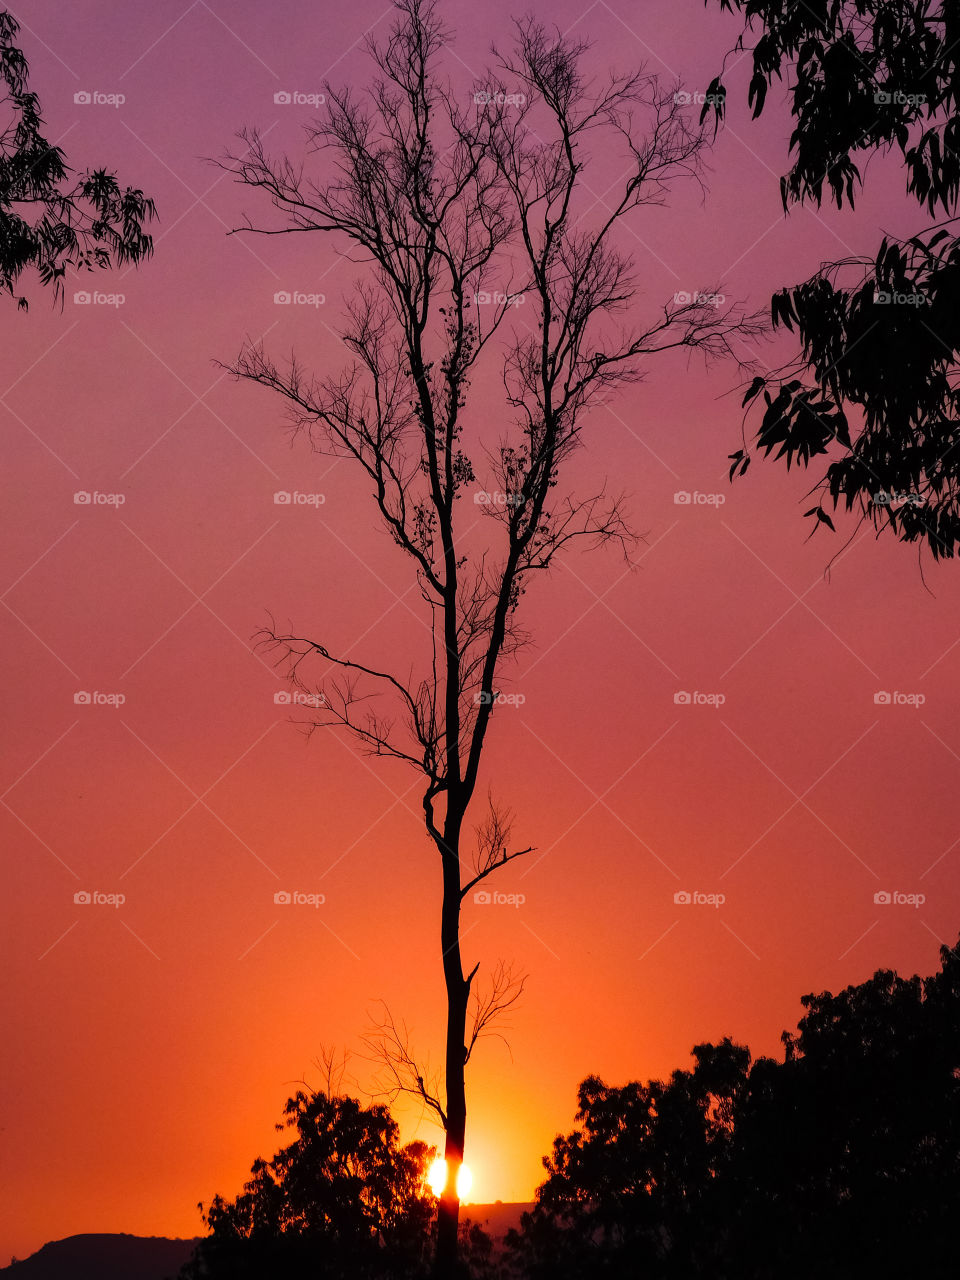 Colourful Beauty Of Sunset with tree composition. hidden sun behind the tree.